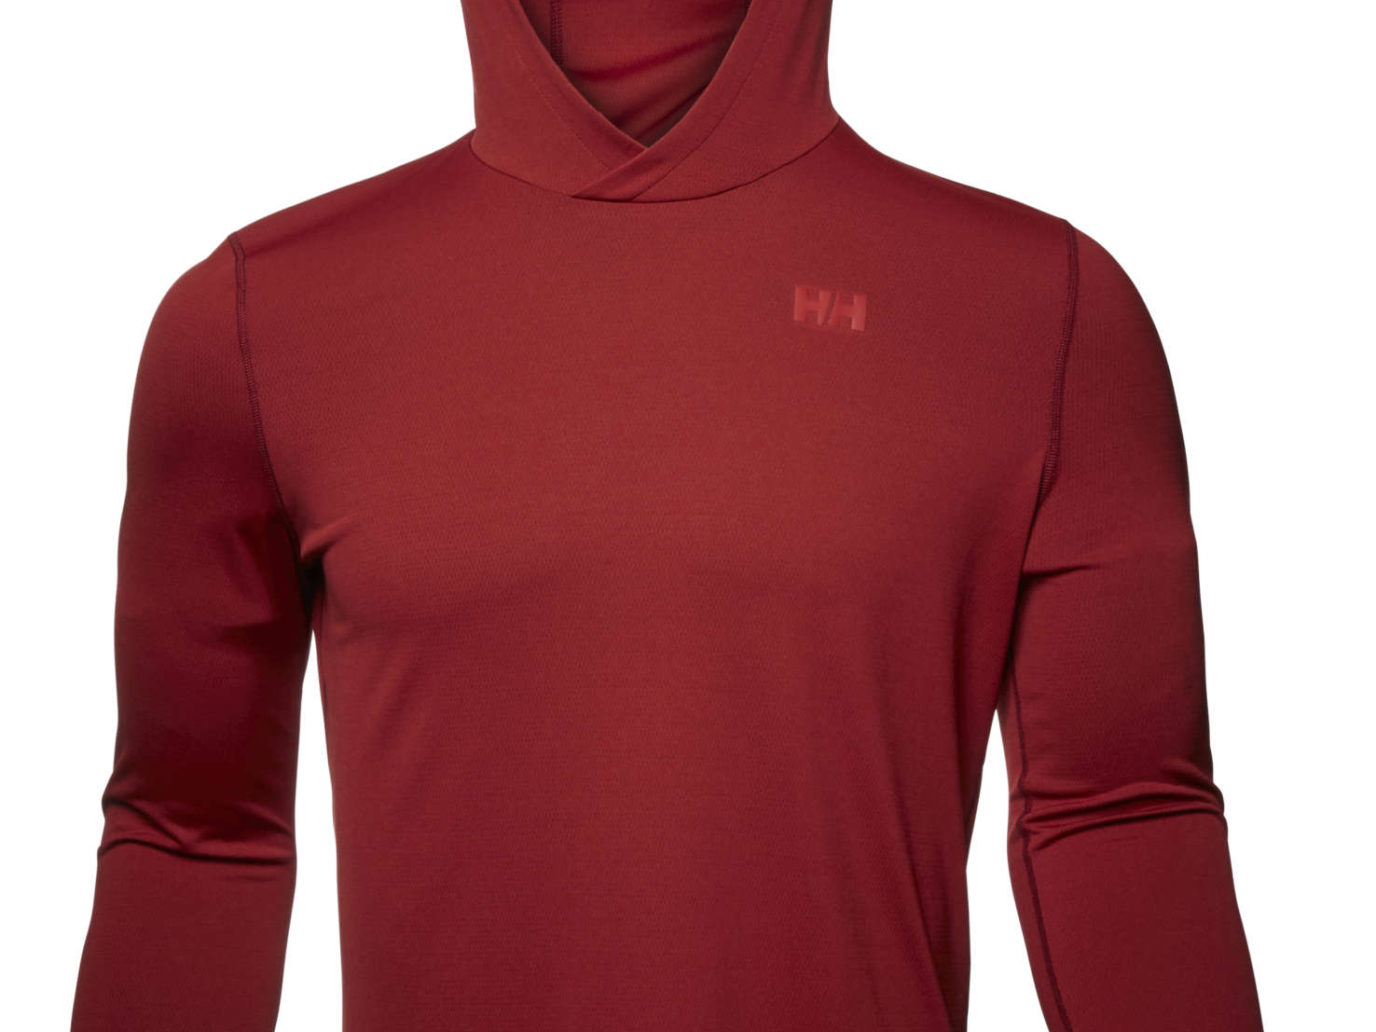 Helly Hansen reviewed by Mountain Life Media